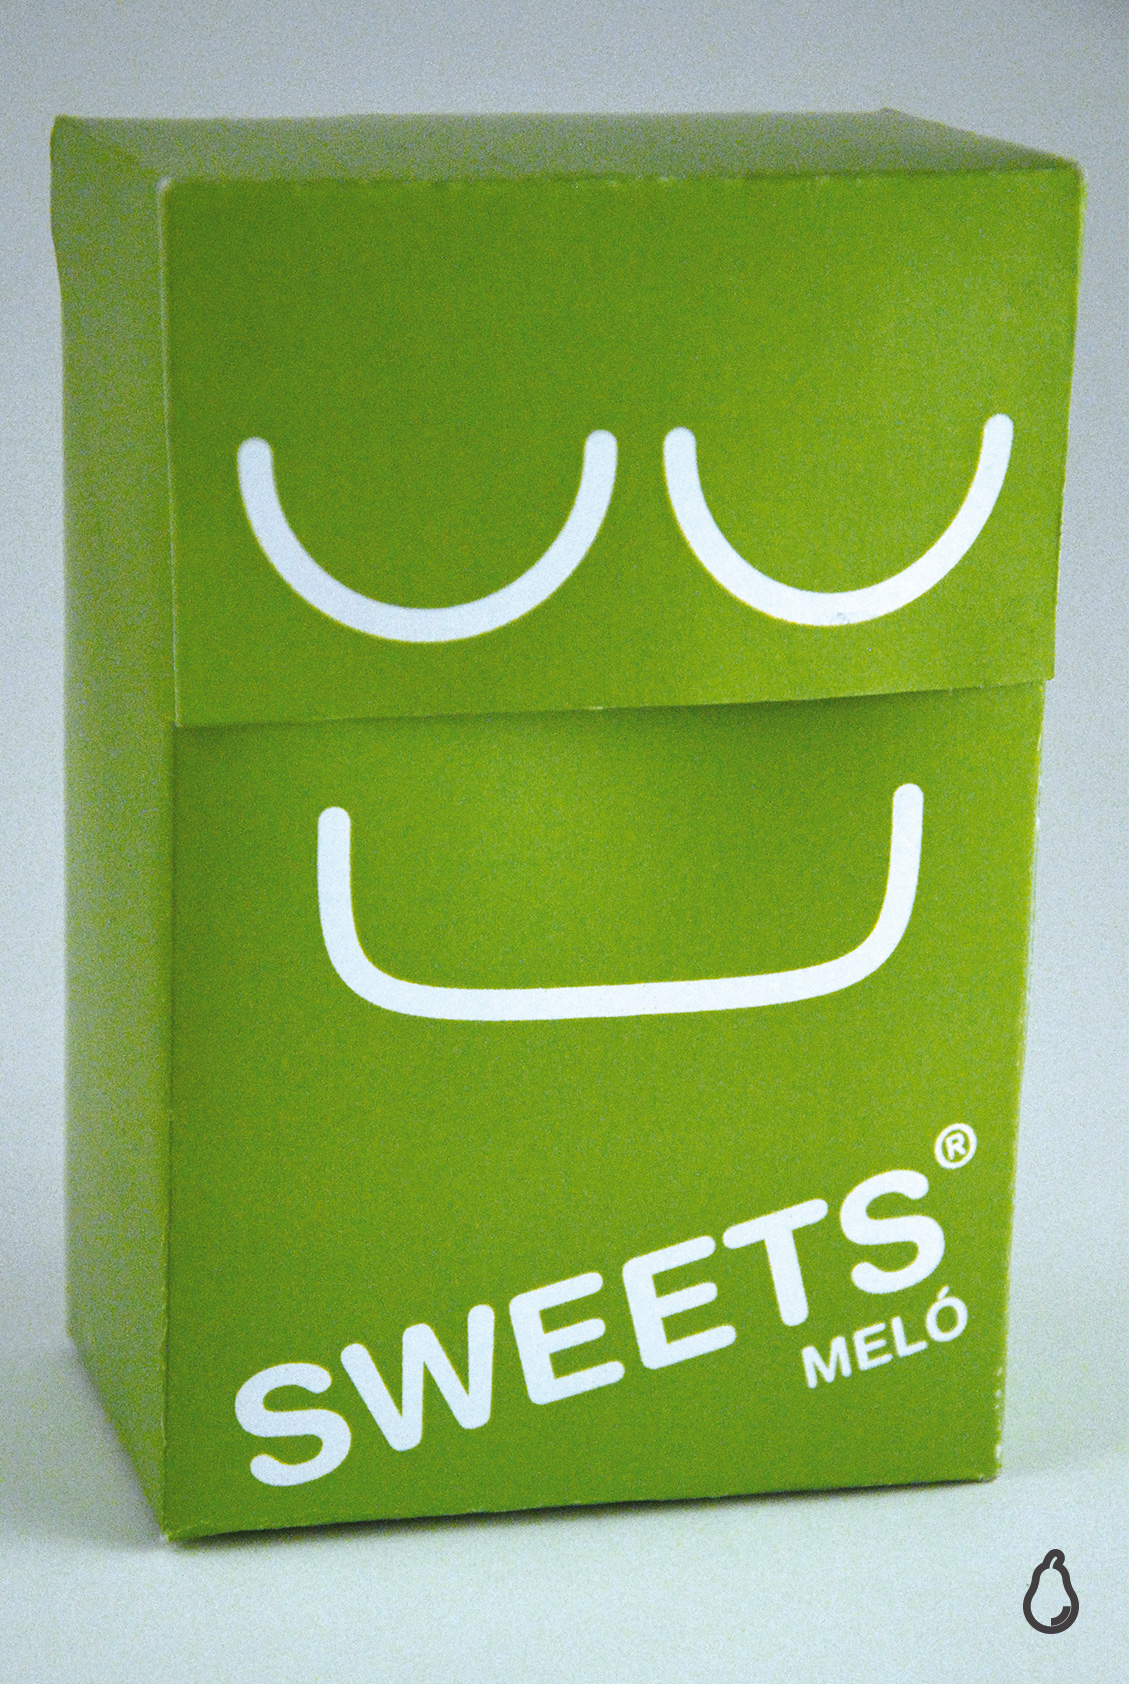 Sweets---melo